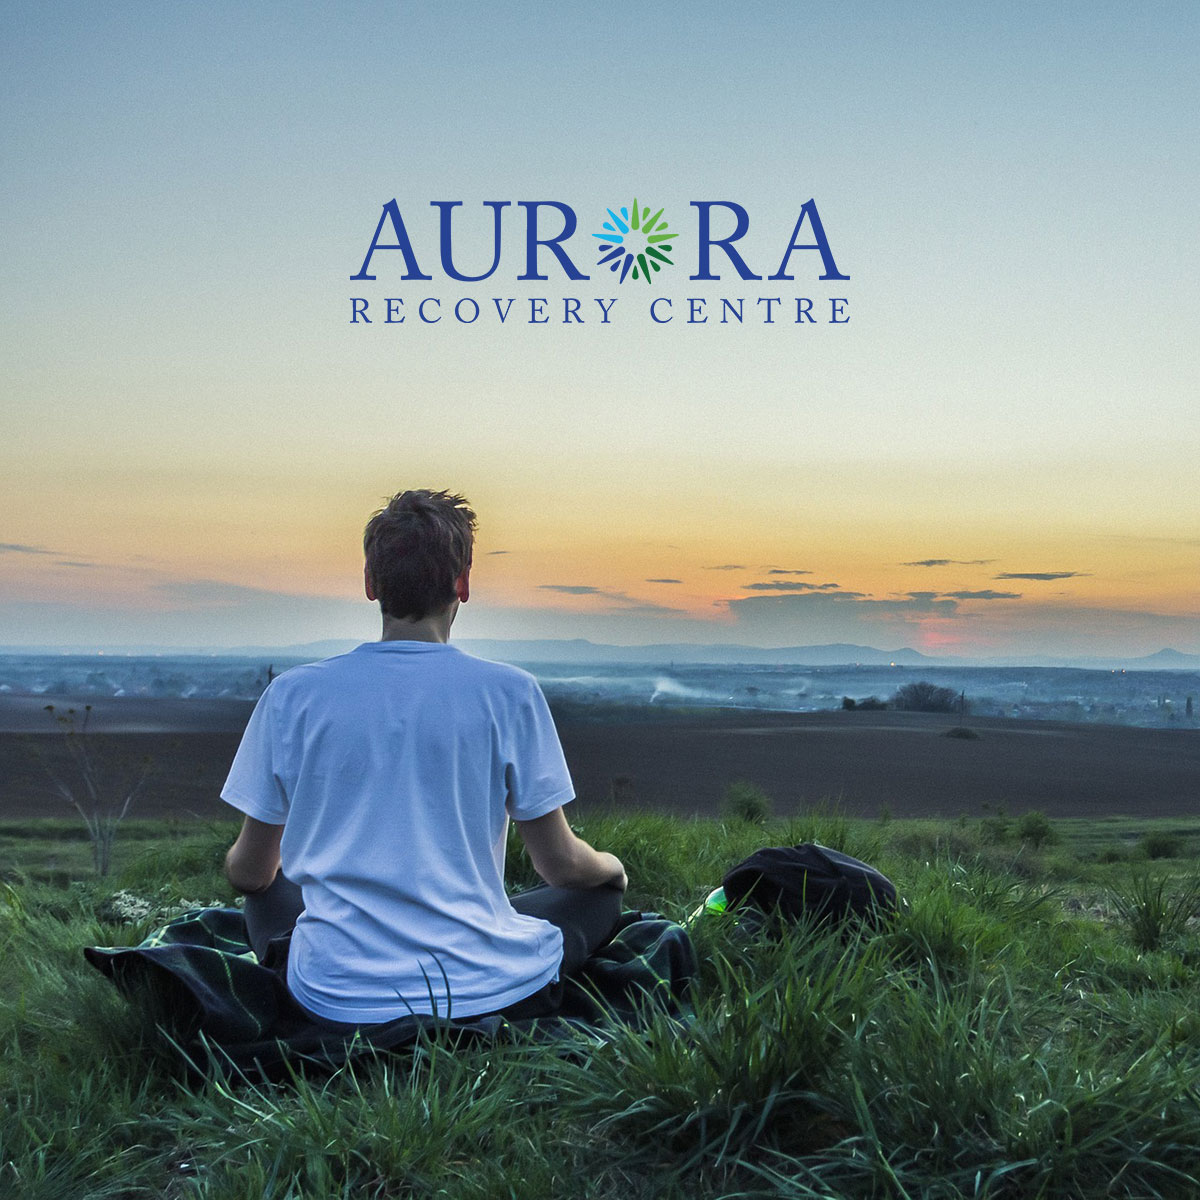 Spiritual experience in recovery